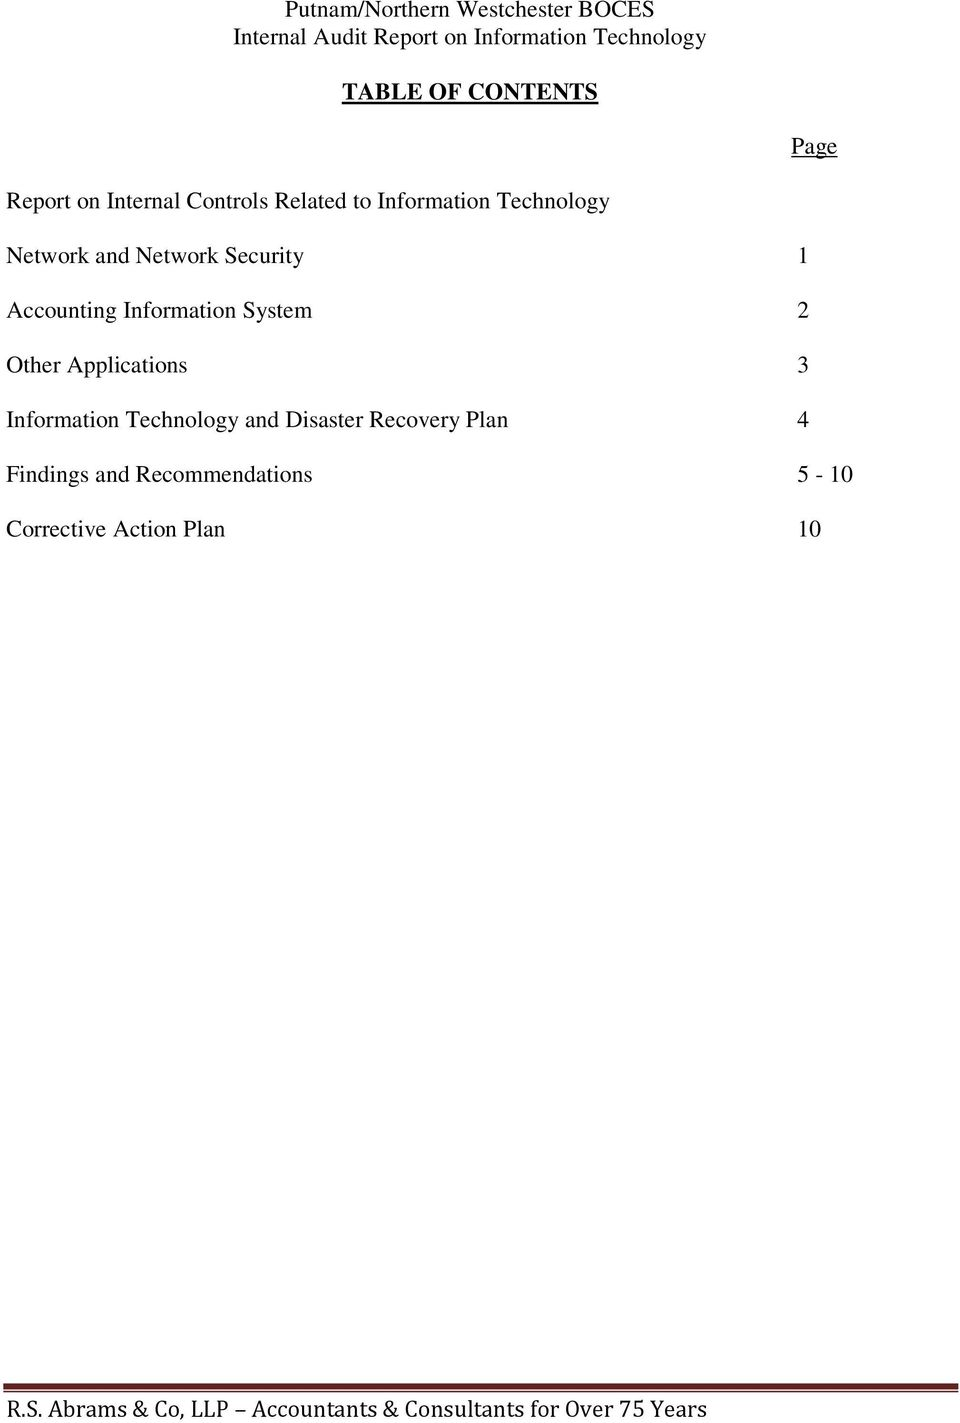 Information Technology and Disaster Recovery Plan 4 Findings and Recommendations 5-10